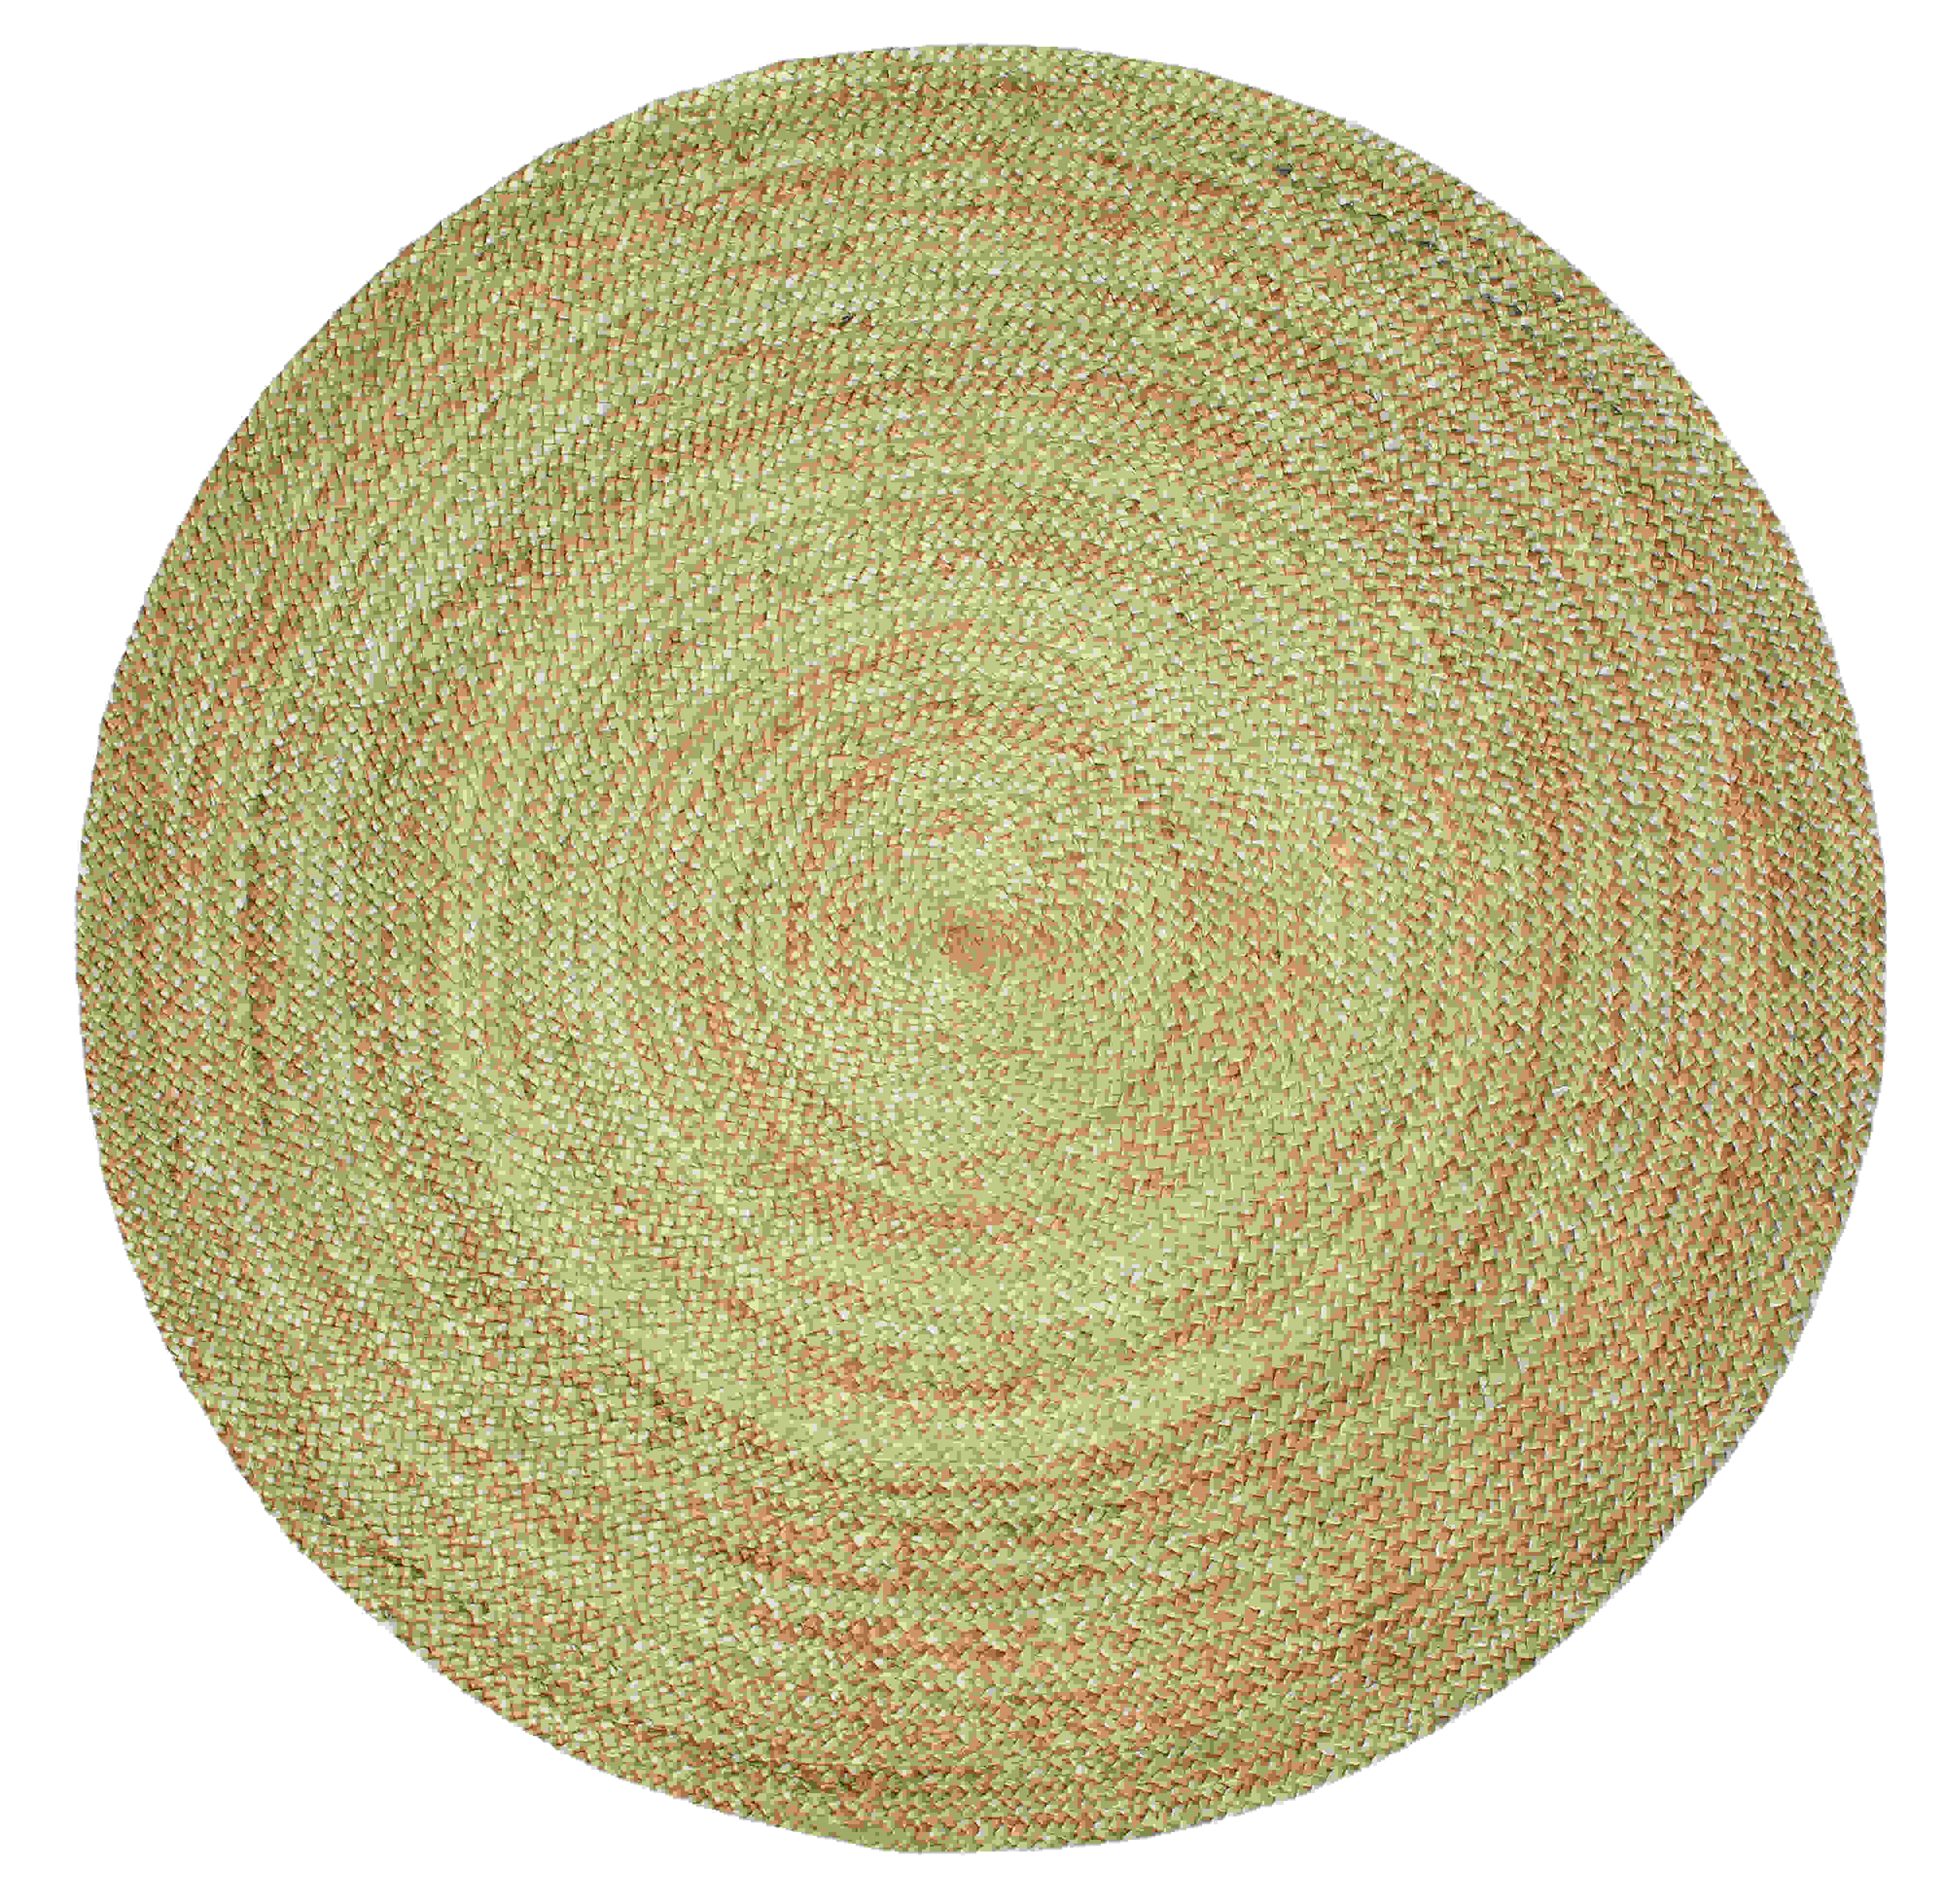 Lrresources Naturaljute Globally Inspired Gray Rug Lr12033-gry40rd